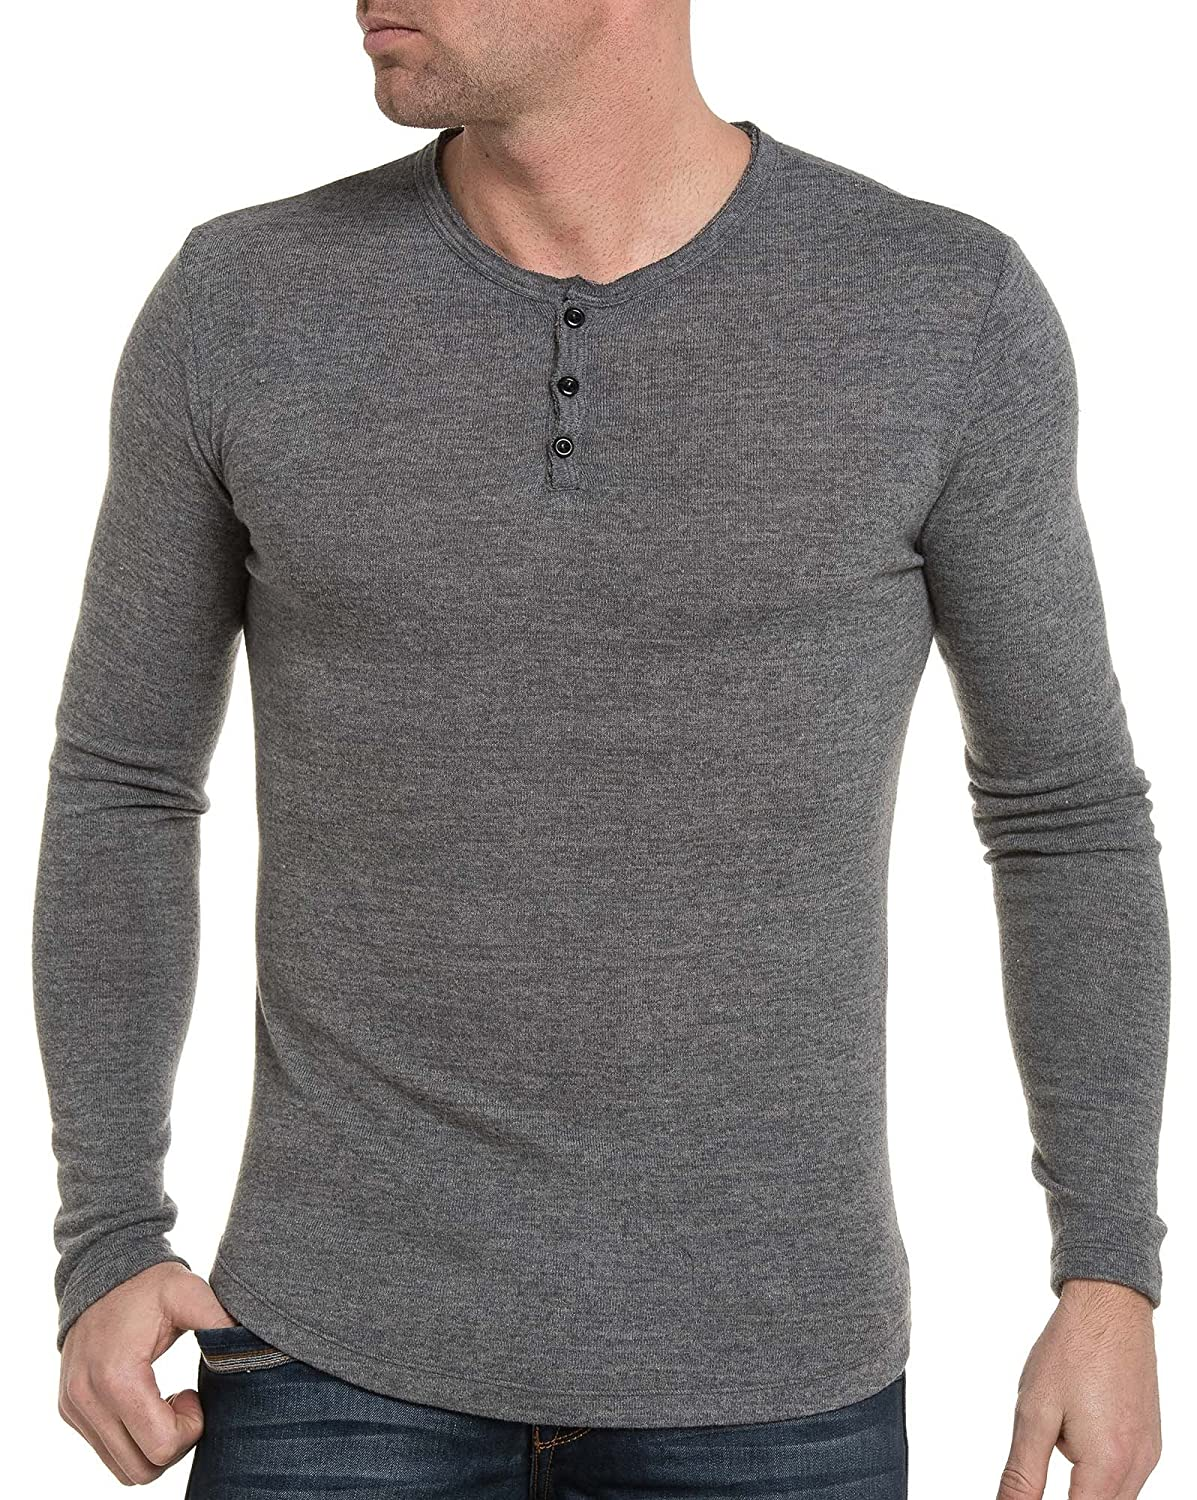 BLZ jeans - gray sweater 3 buttons